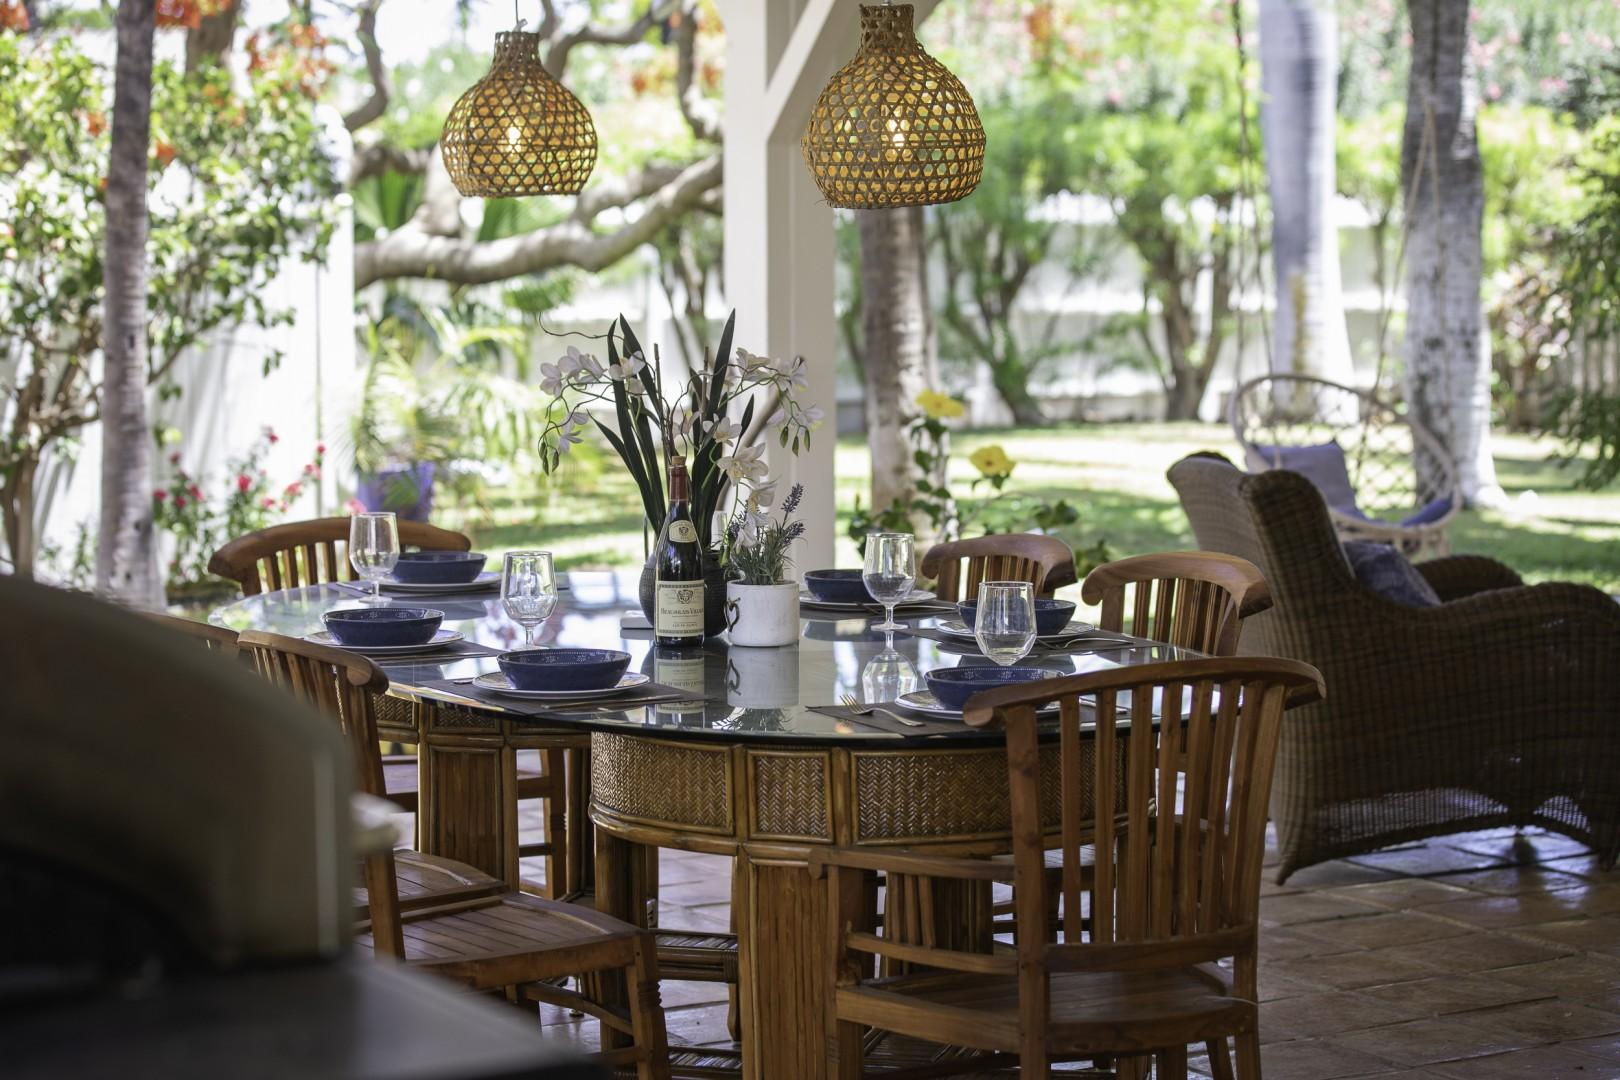 Peaceful outdoor dining.